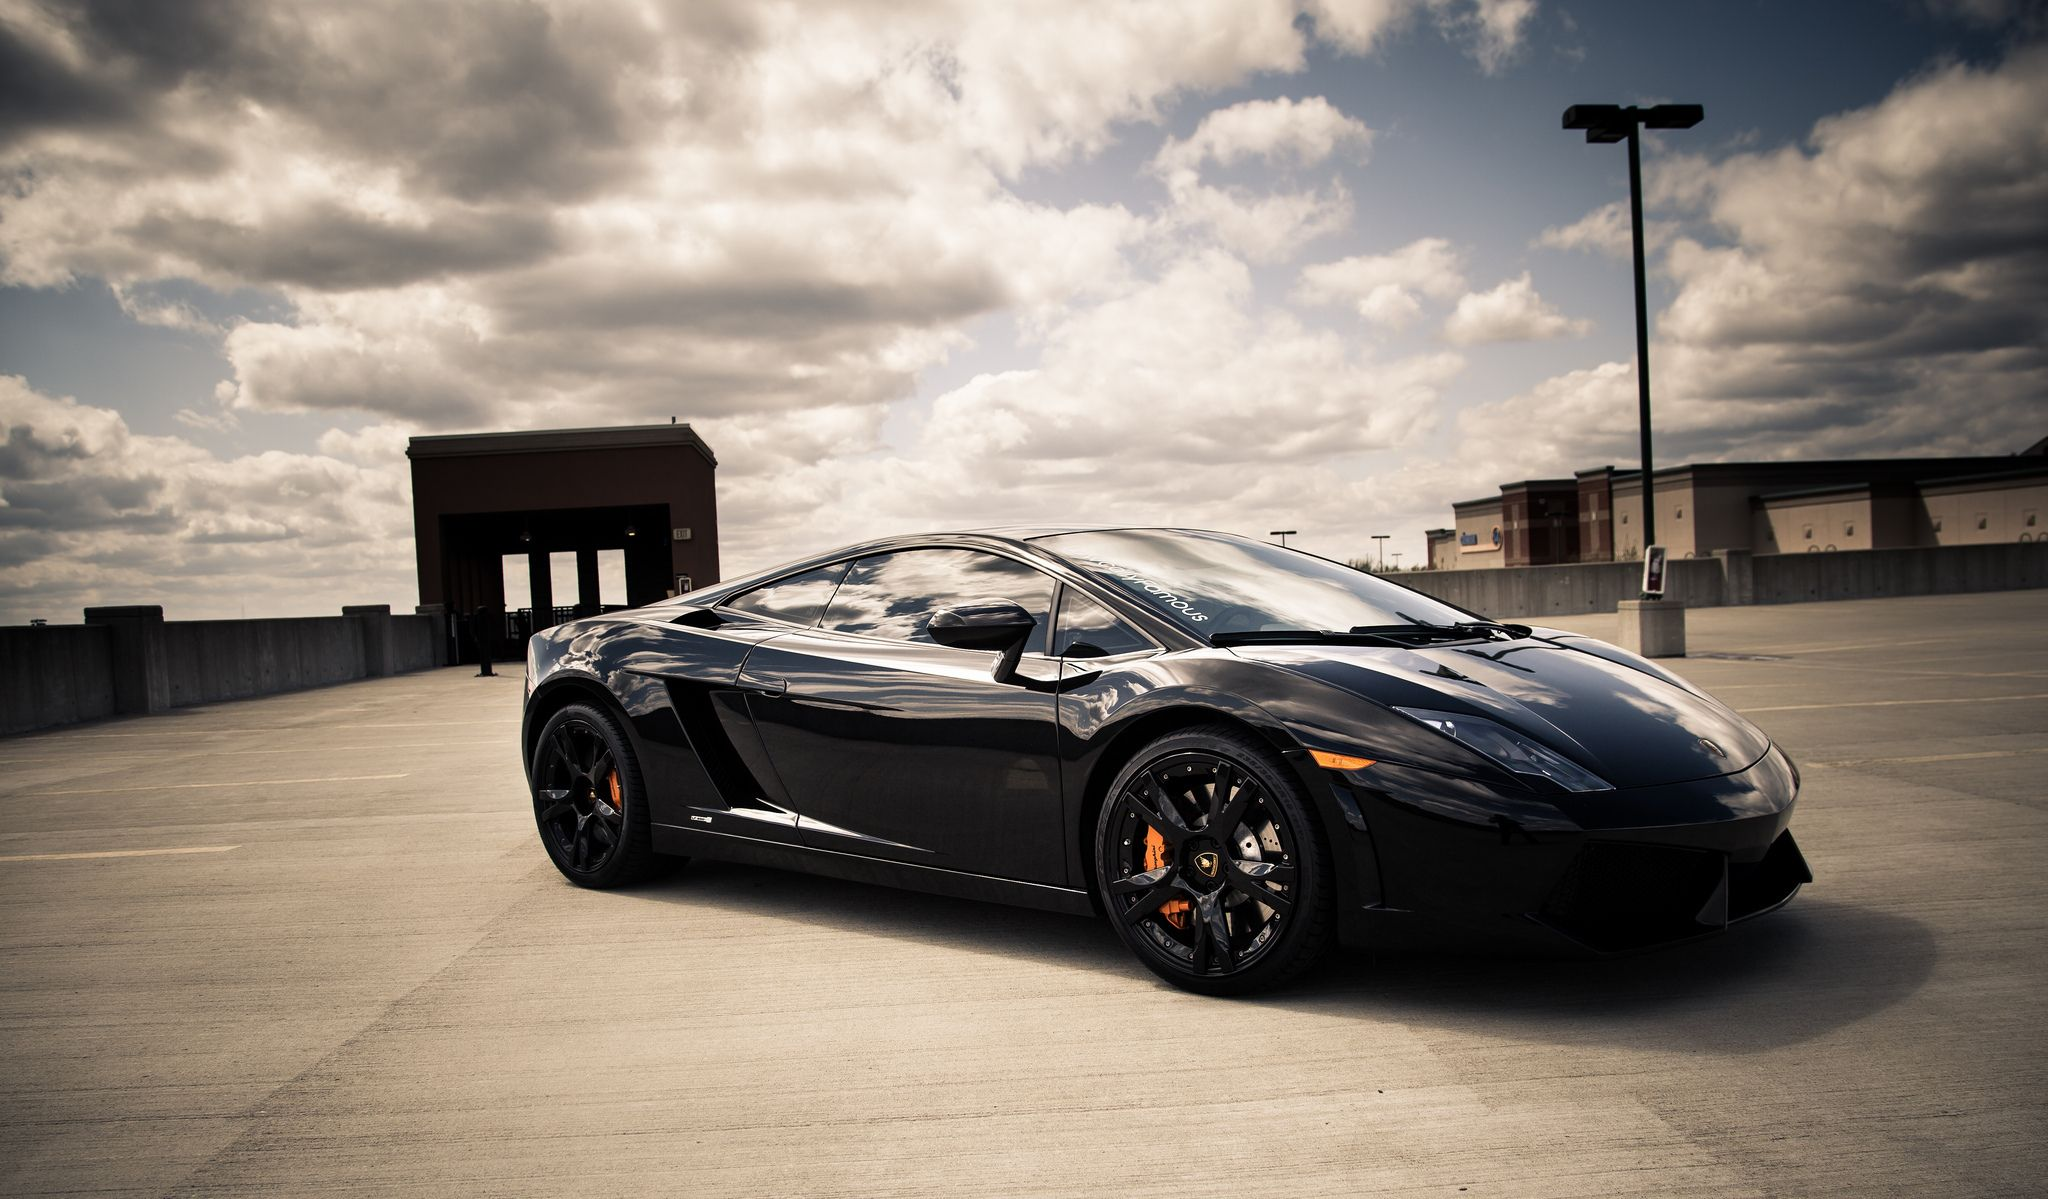 Wallpaper Area Black Lamborghini Gallardo HD